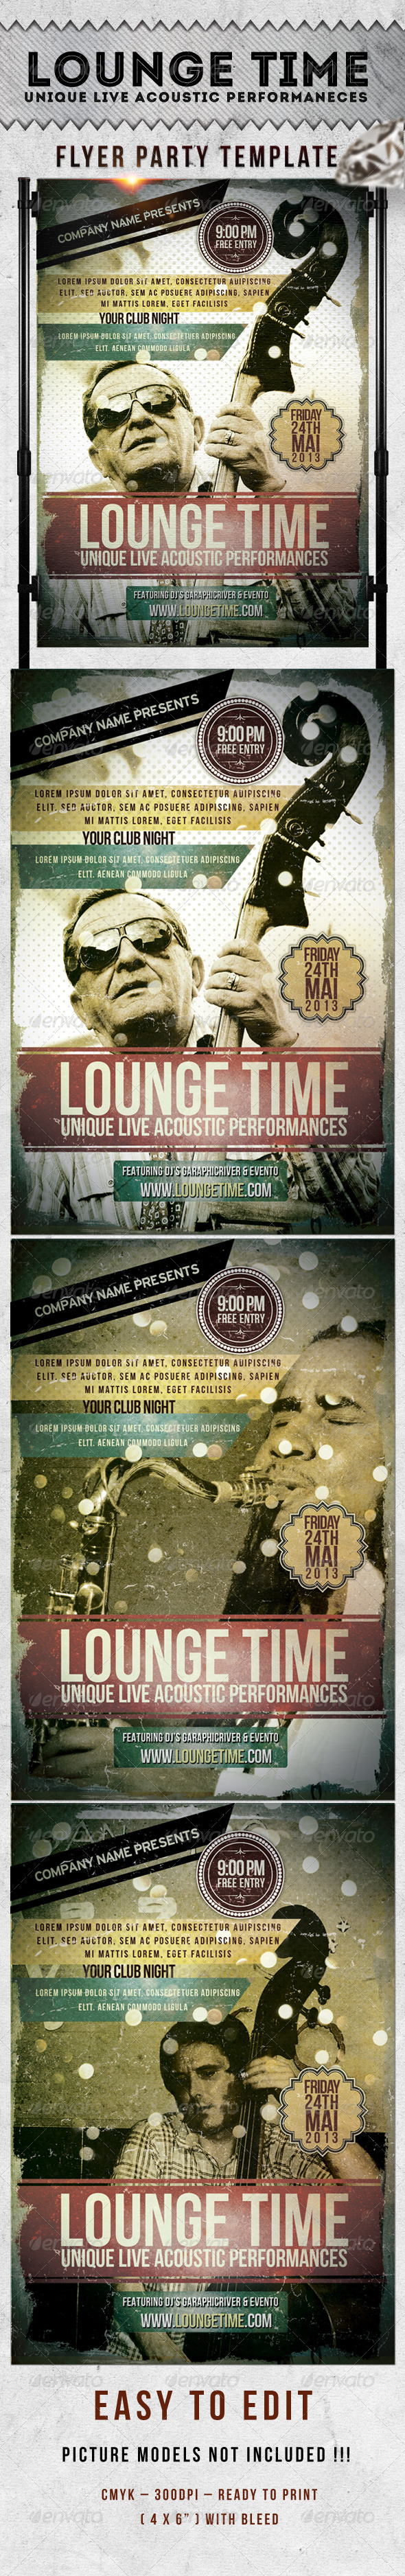 Lounge Time Flyer Template